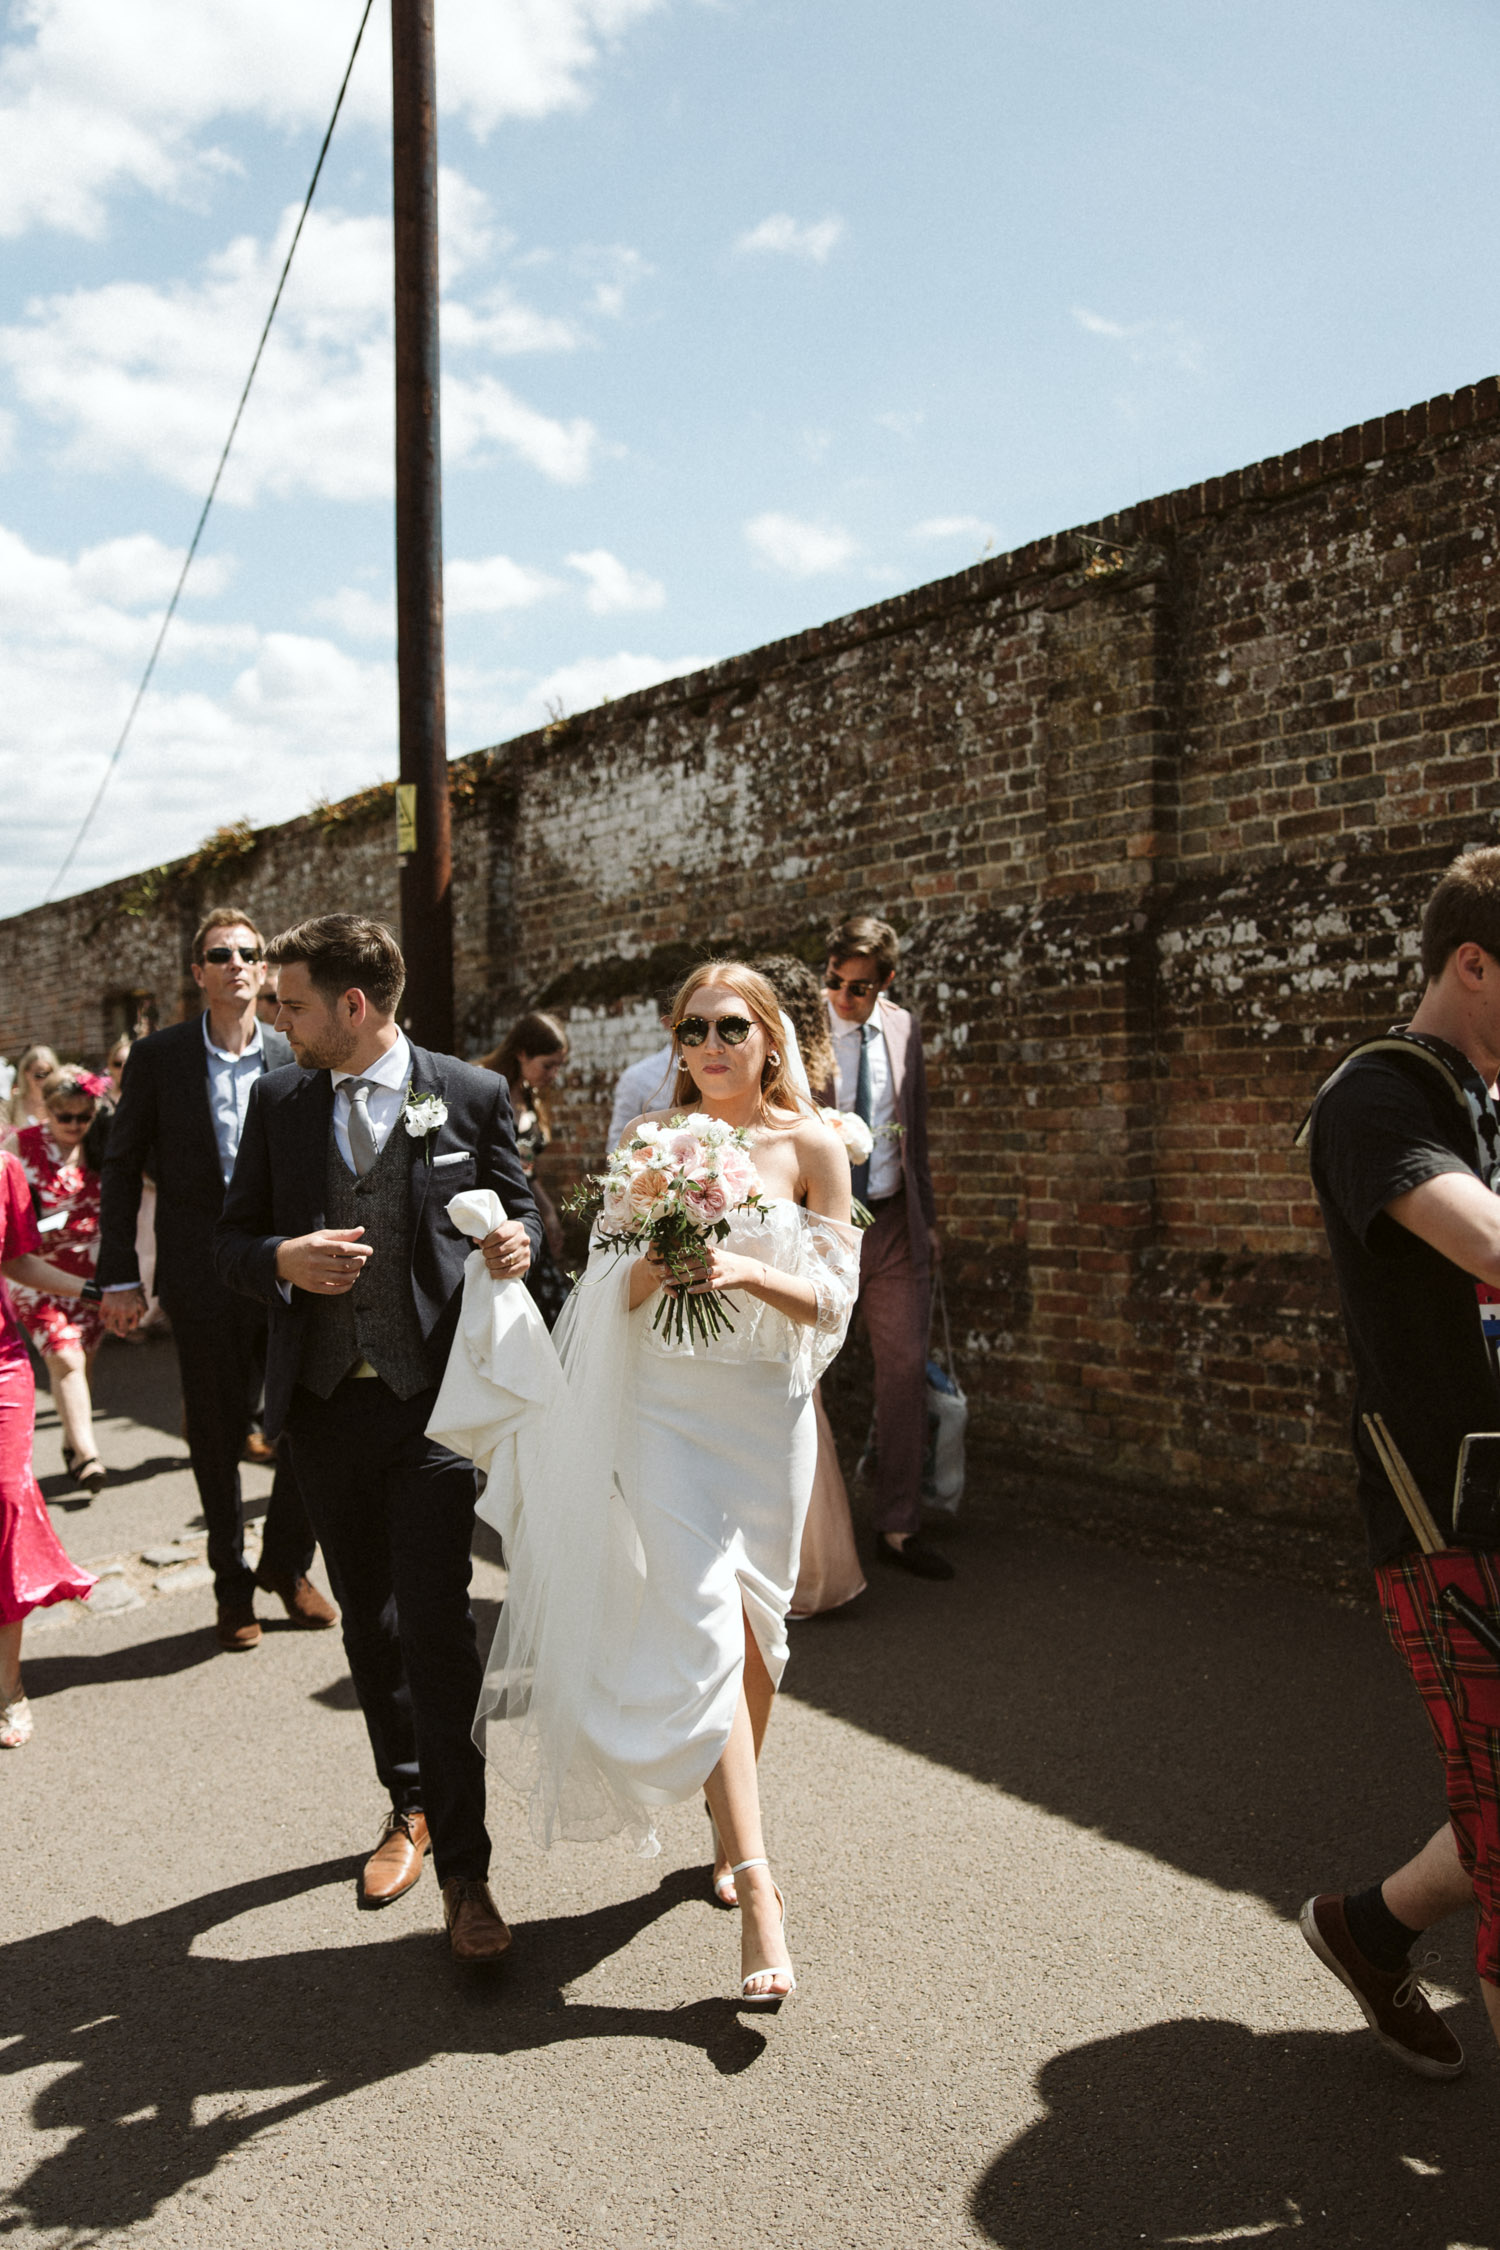 the glamorous bride leading guests through the village